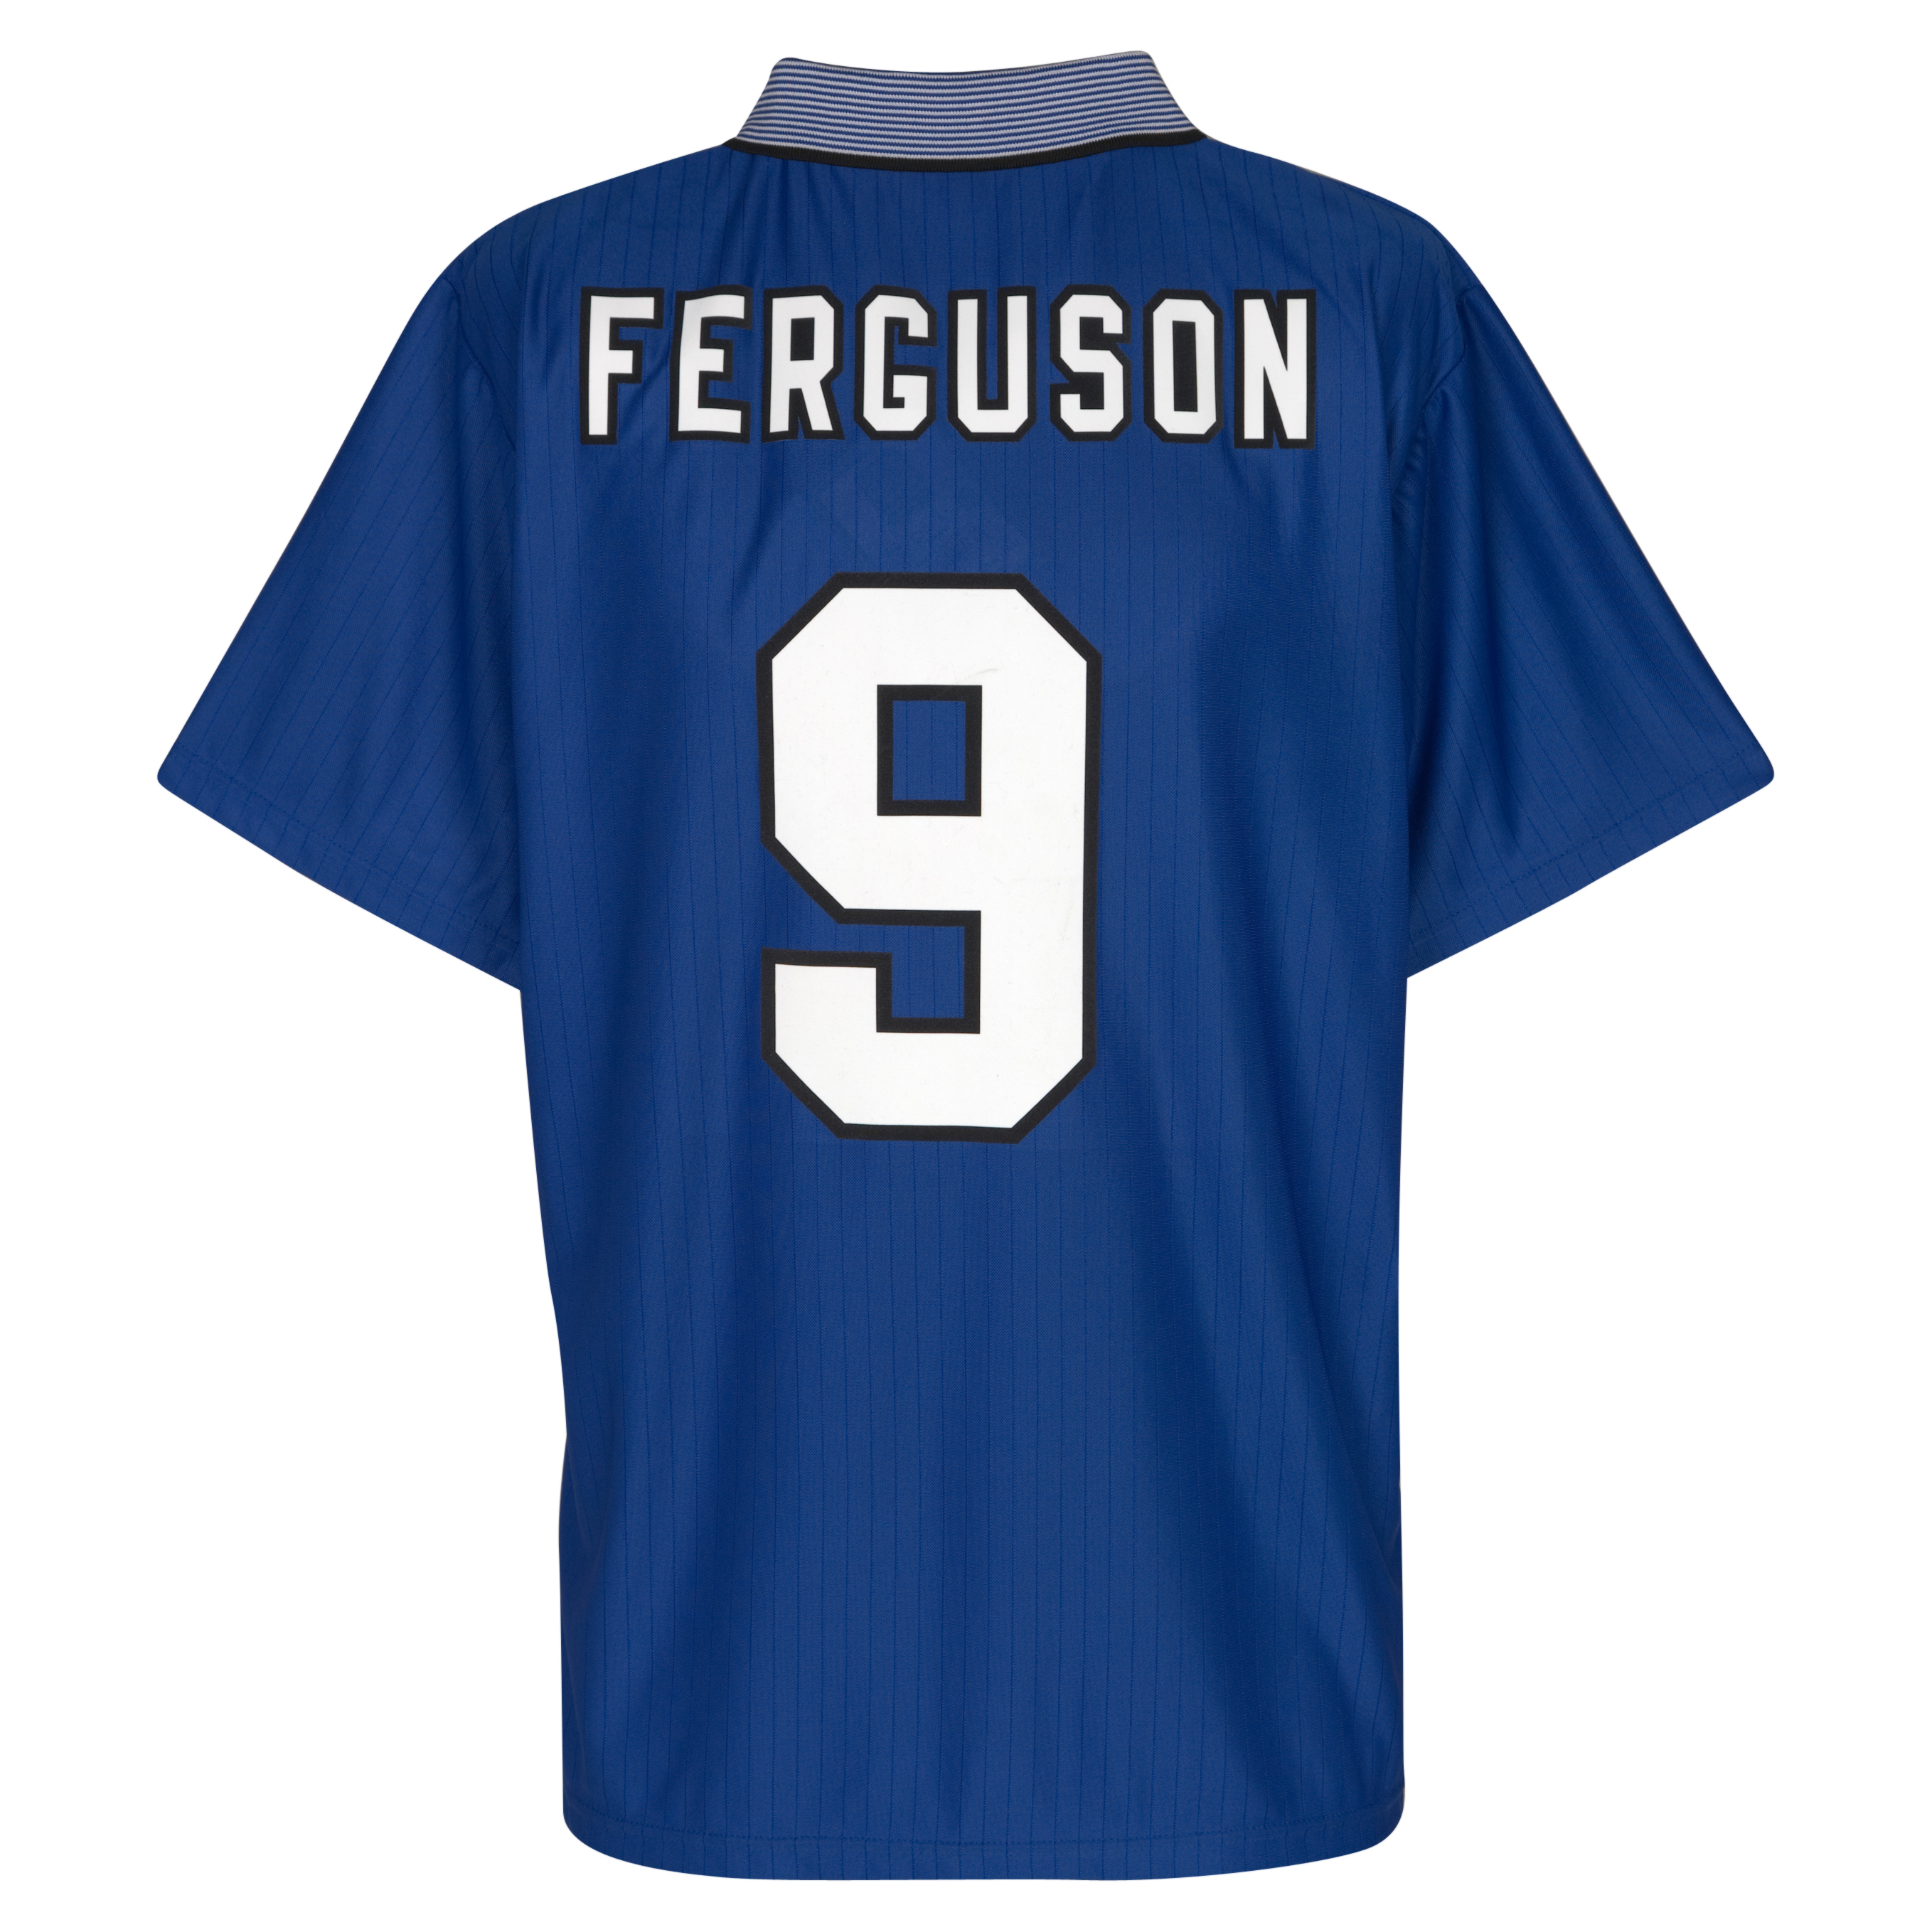 Everton 1995 FA Cup Winners Shirt - Everton Blue with Ferguson  9 printing